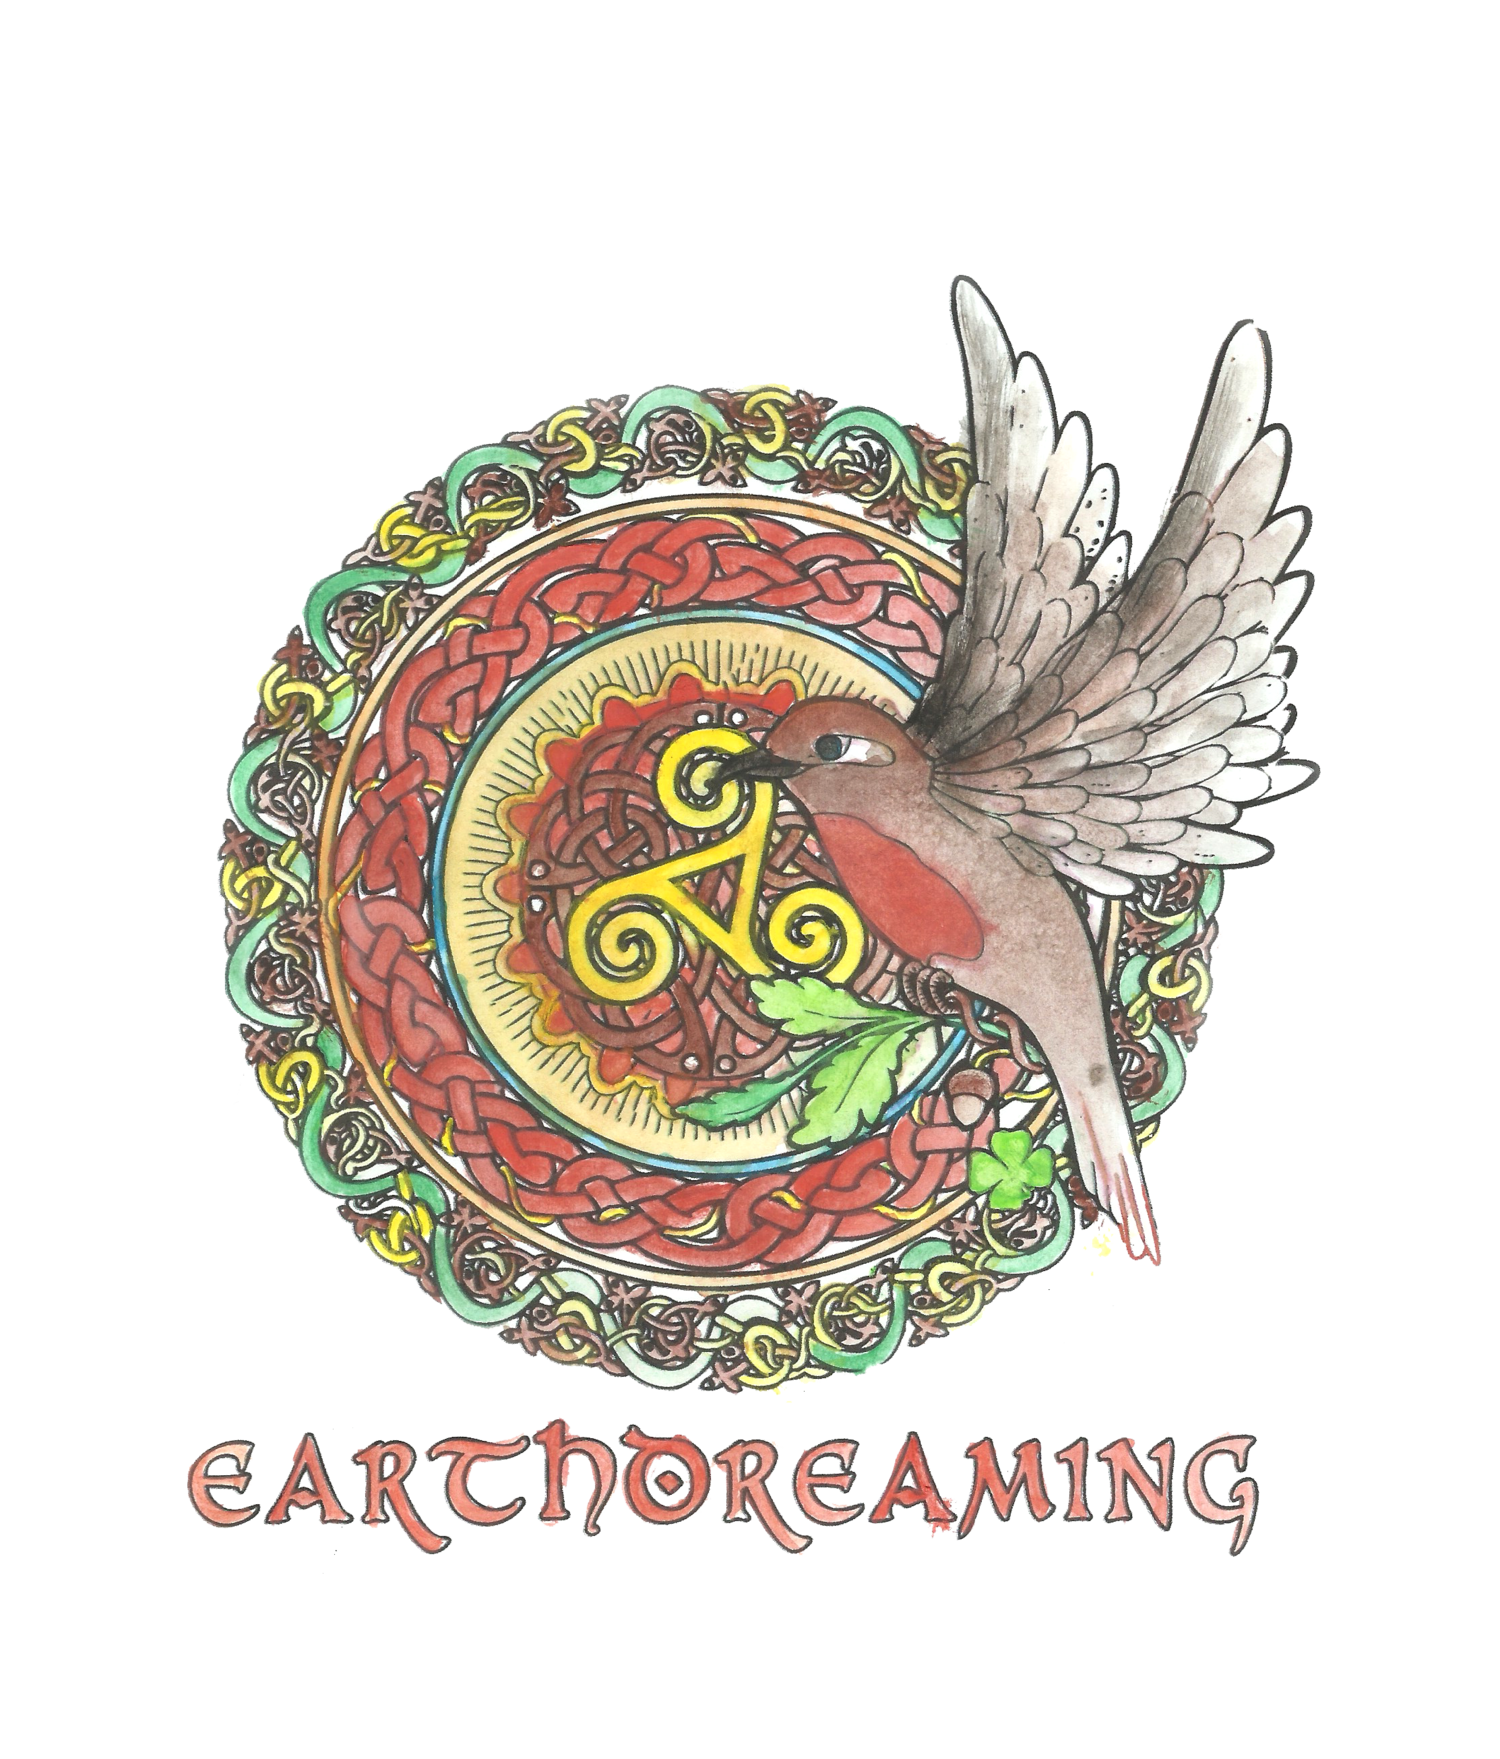 EarthDreaming